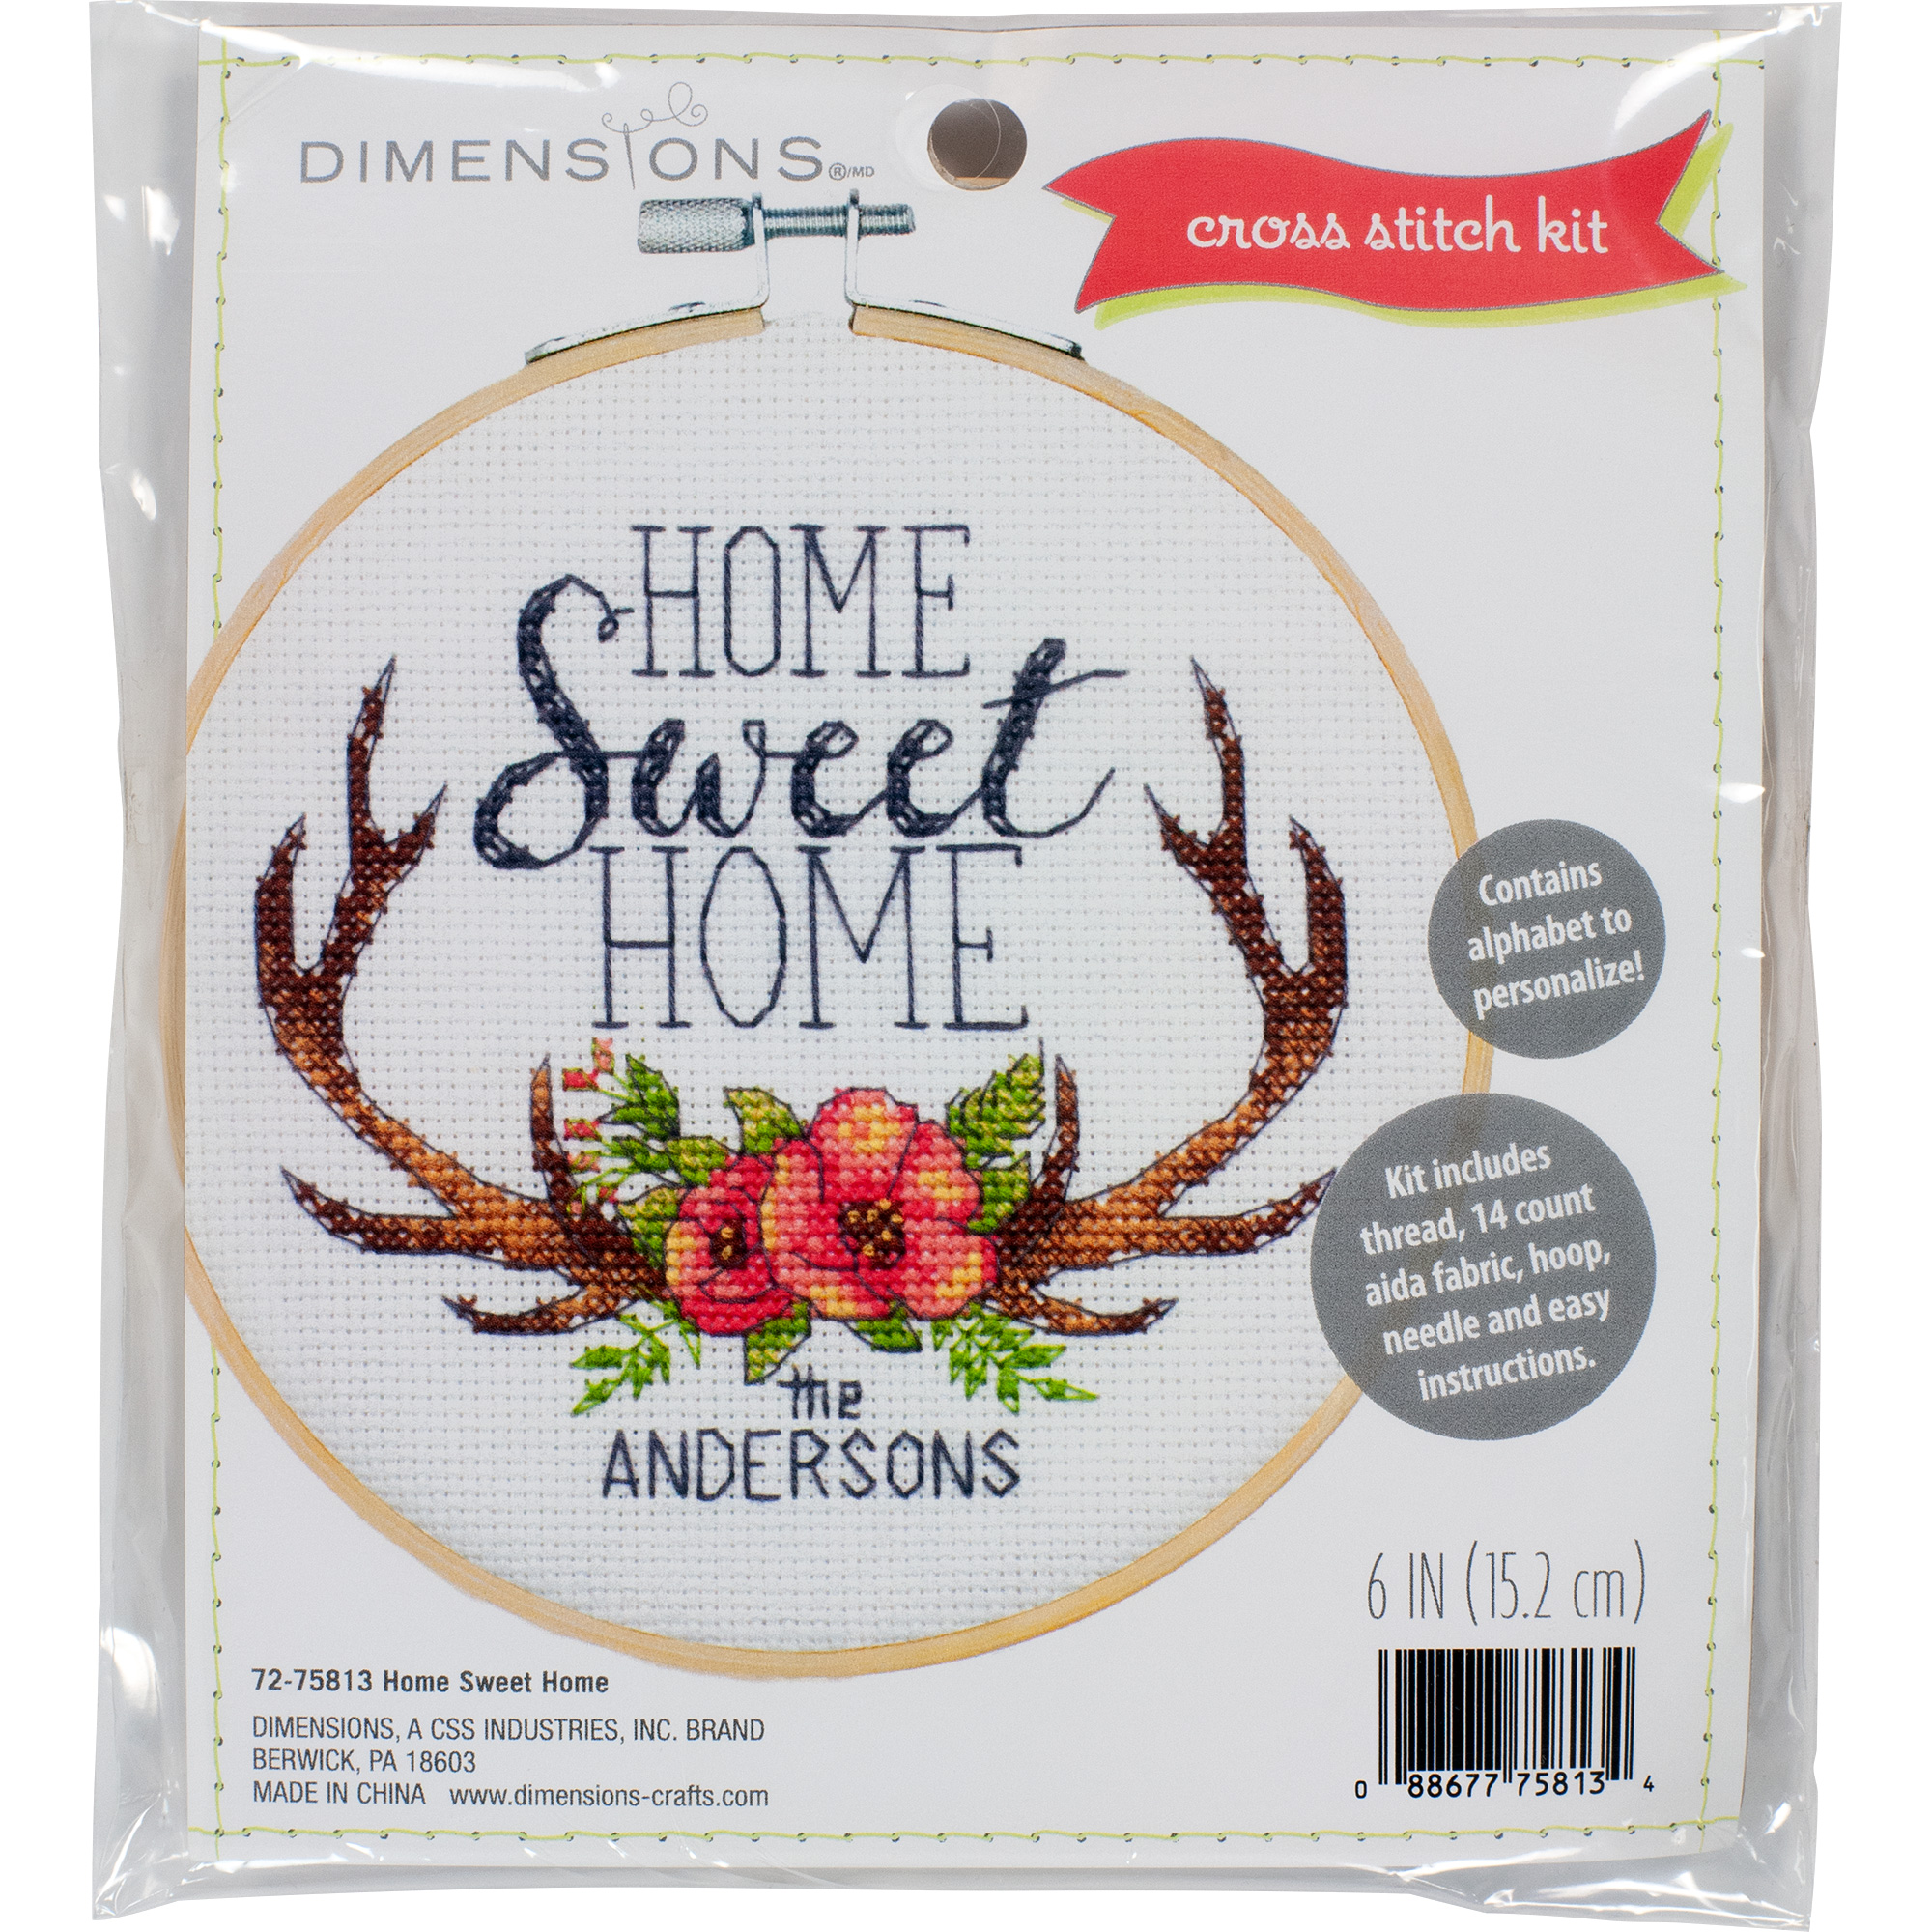 Home Sweet Home Dimensions Learn a Craft Embroidery Kit